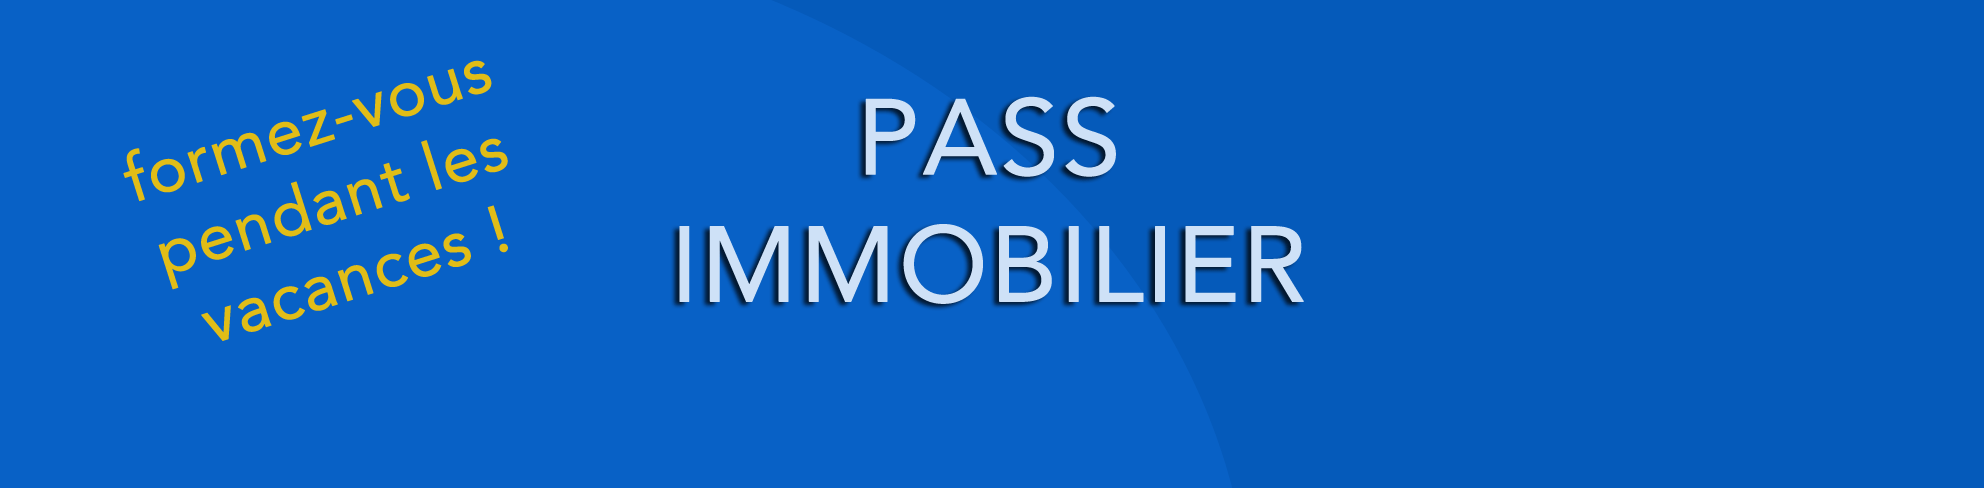 PASS-IMMOBILIER2